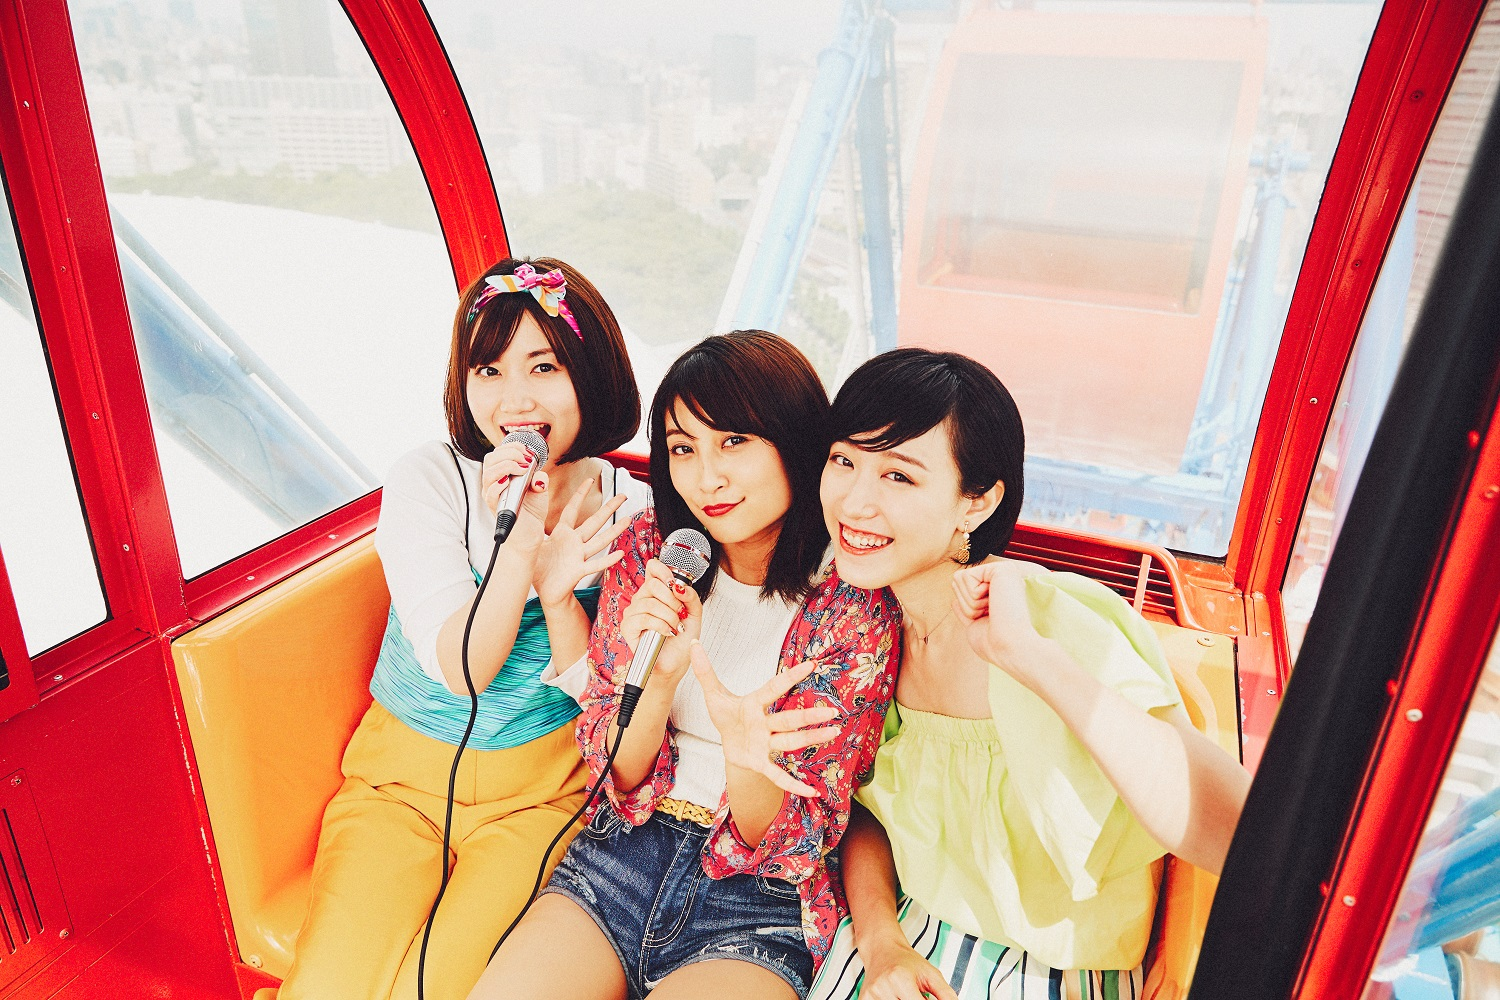 Karaoke Ferris Wheel at Tokyo Dome City Attractions (amuzen articles)